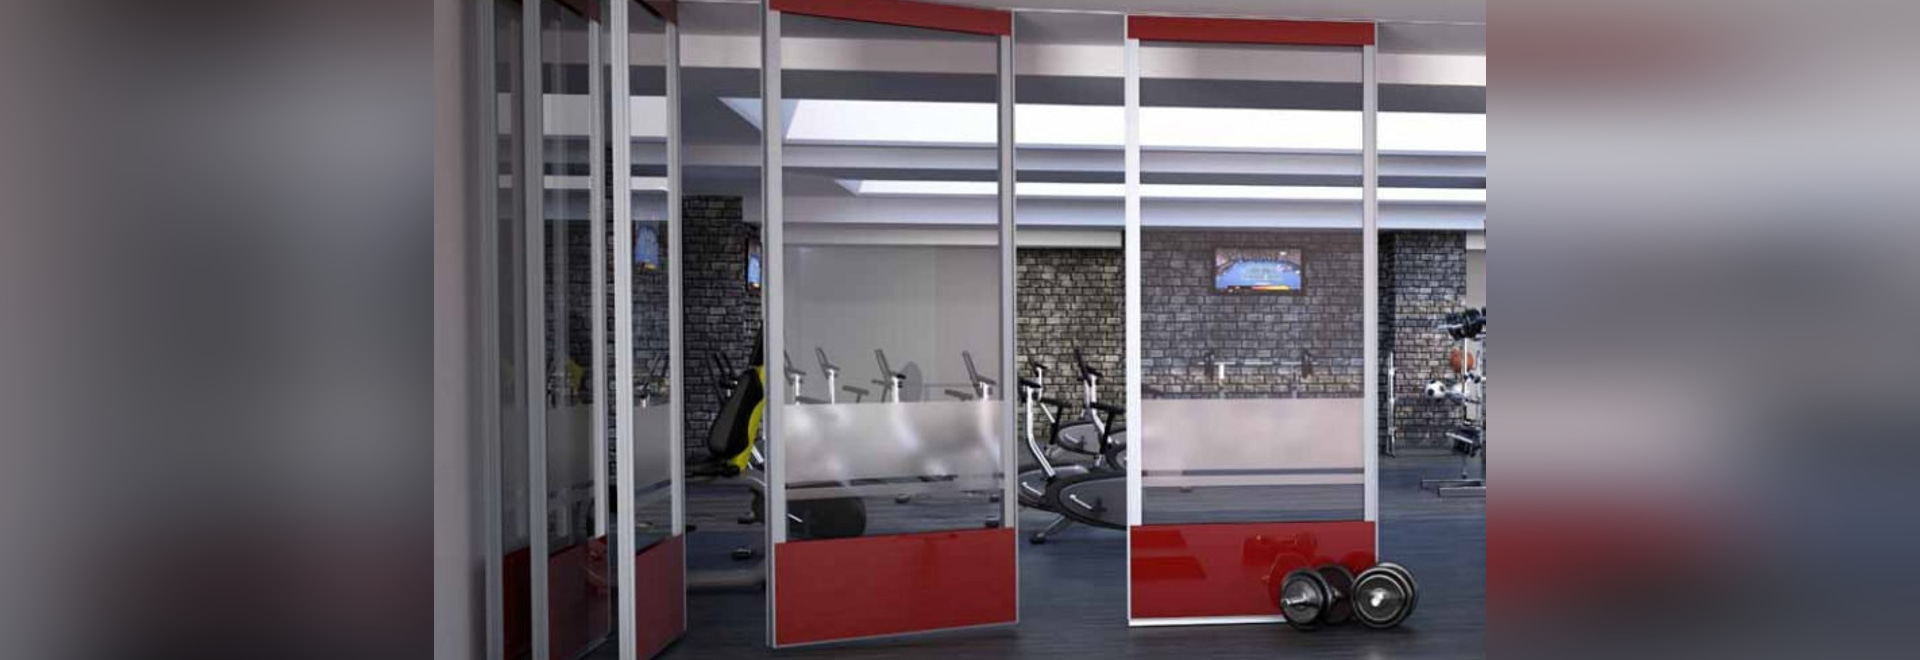 Spotlight Rolling Wall: More office space with moving partition